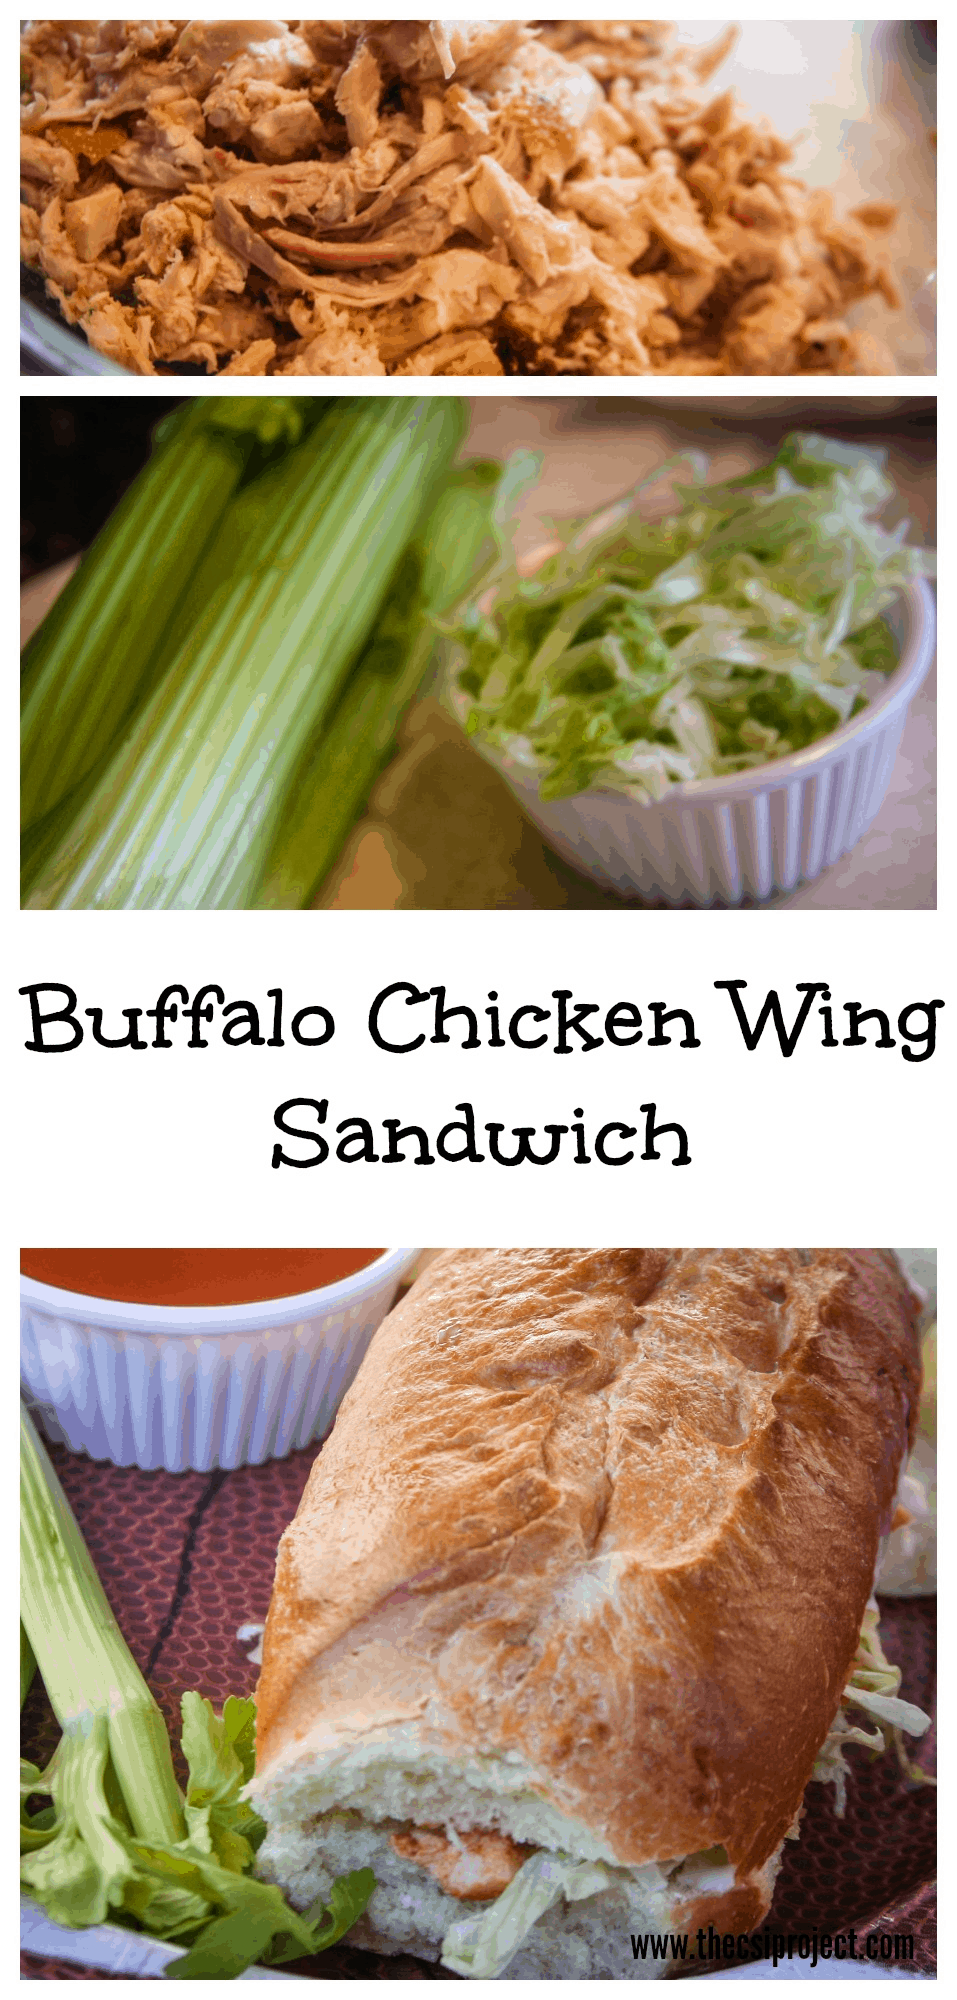 Buffalo Chicken Wing Sandwich